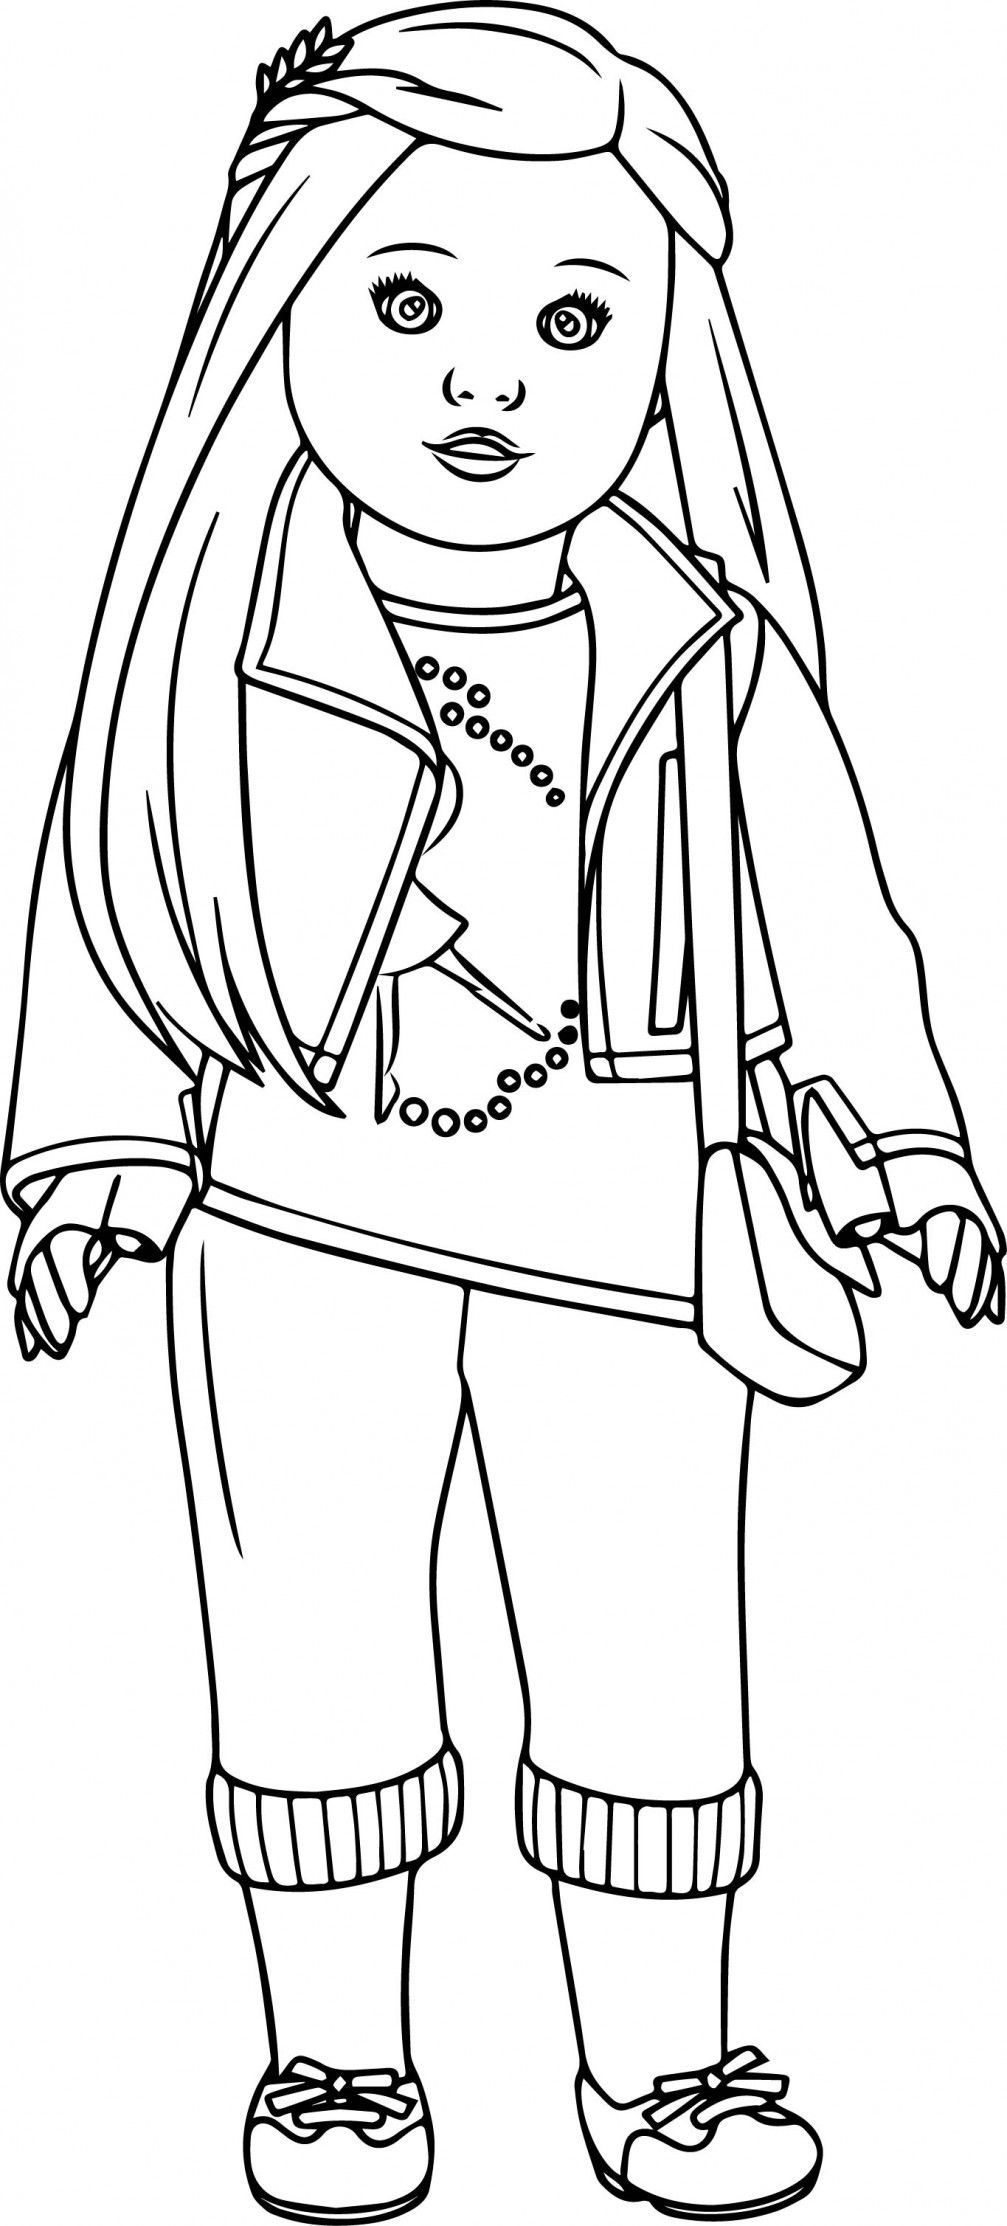 girl for coloring coloring pages for girls best coloring pages for kids girl coloring for